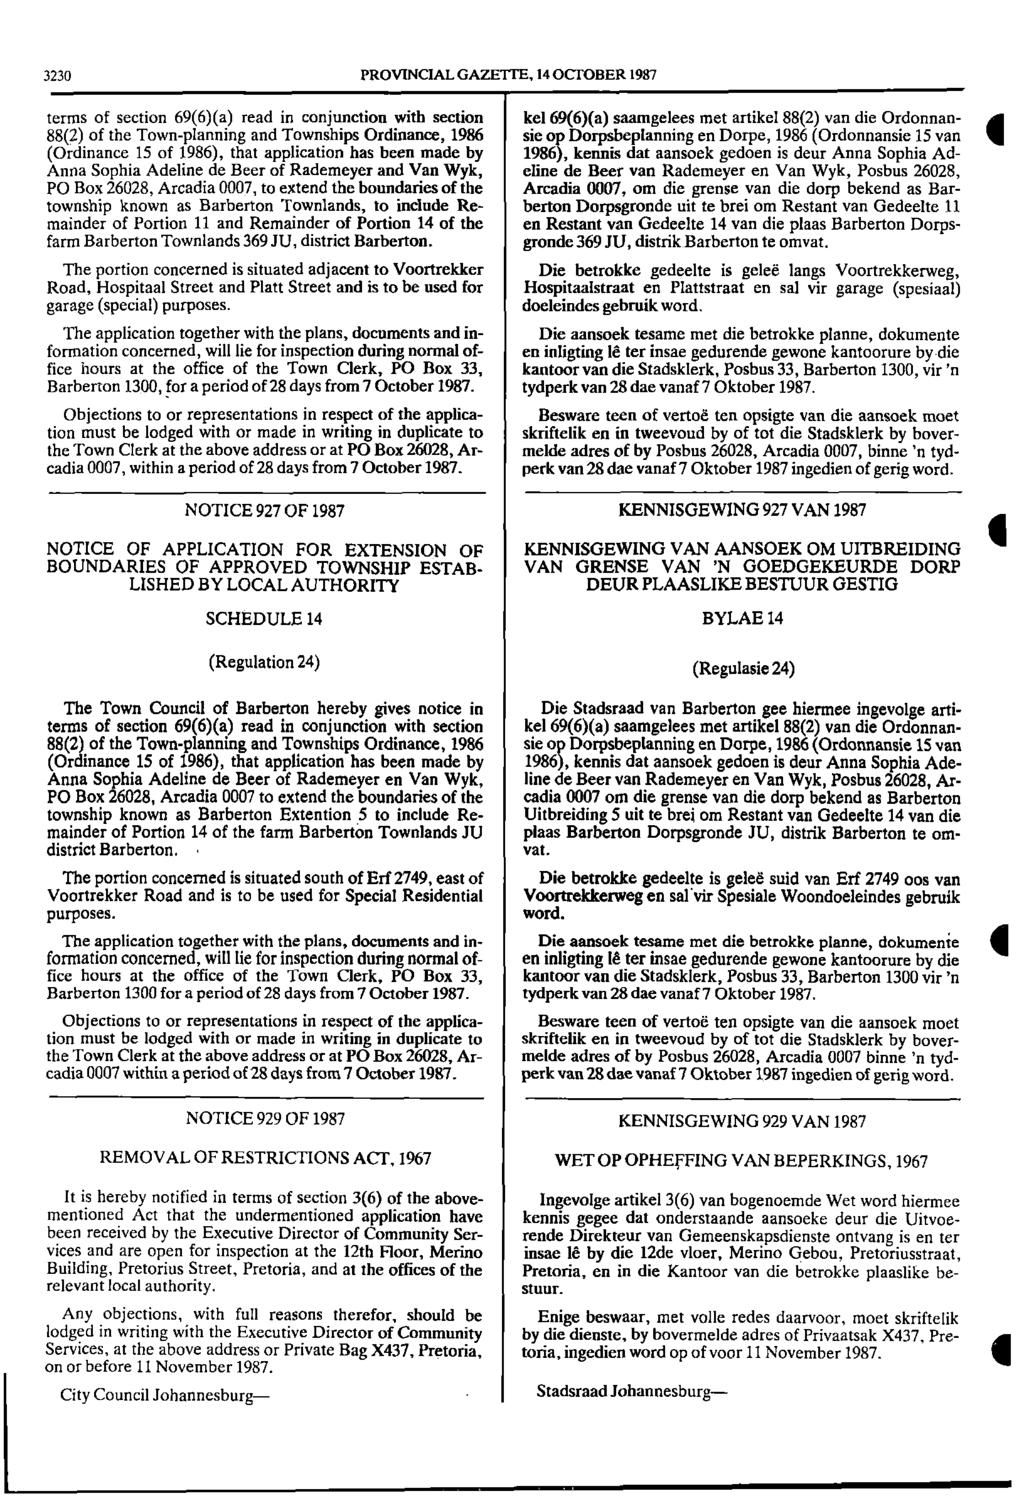 3230 PROVINCIAL GAZETTE, 14 OCTOBER 1987 terms of section 69(6)(a) read in conjunction with section kel 69(6)(a) saamgelees met artikel 88(2) van die Ordonnan 88(2) of the Townplanning and Townships